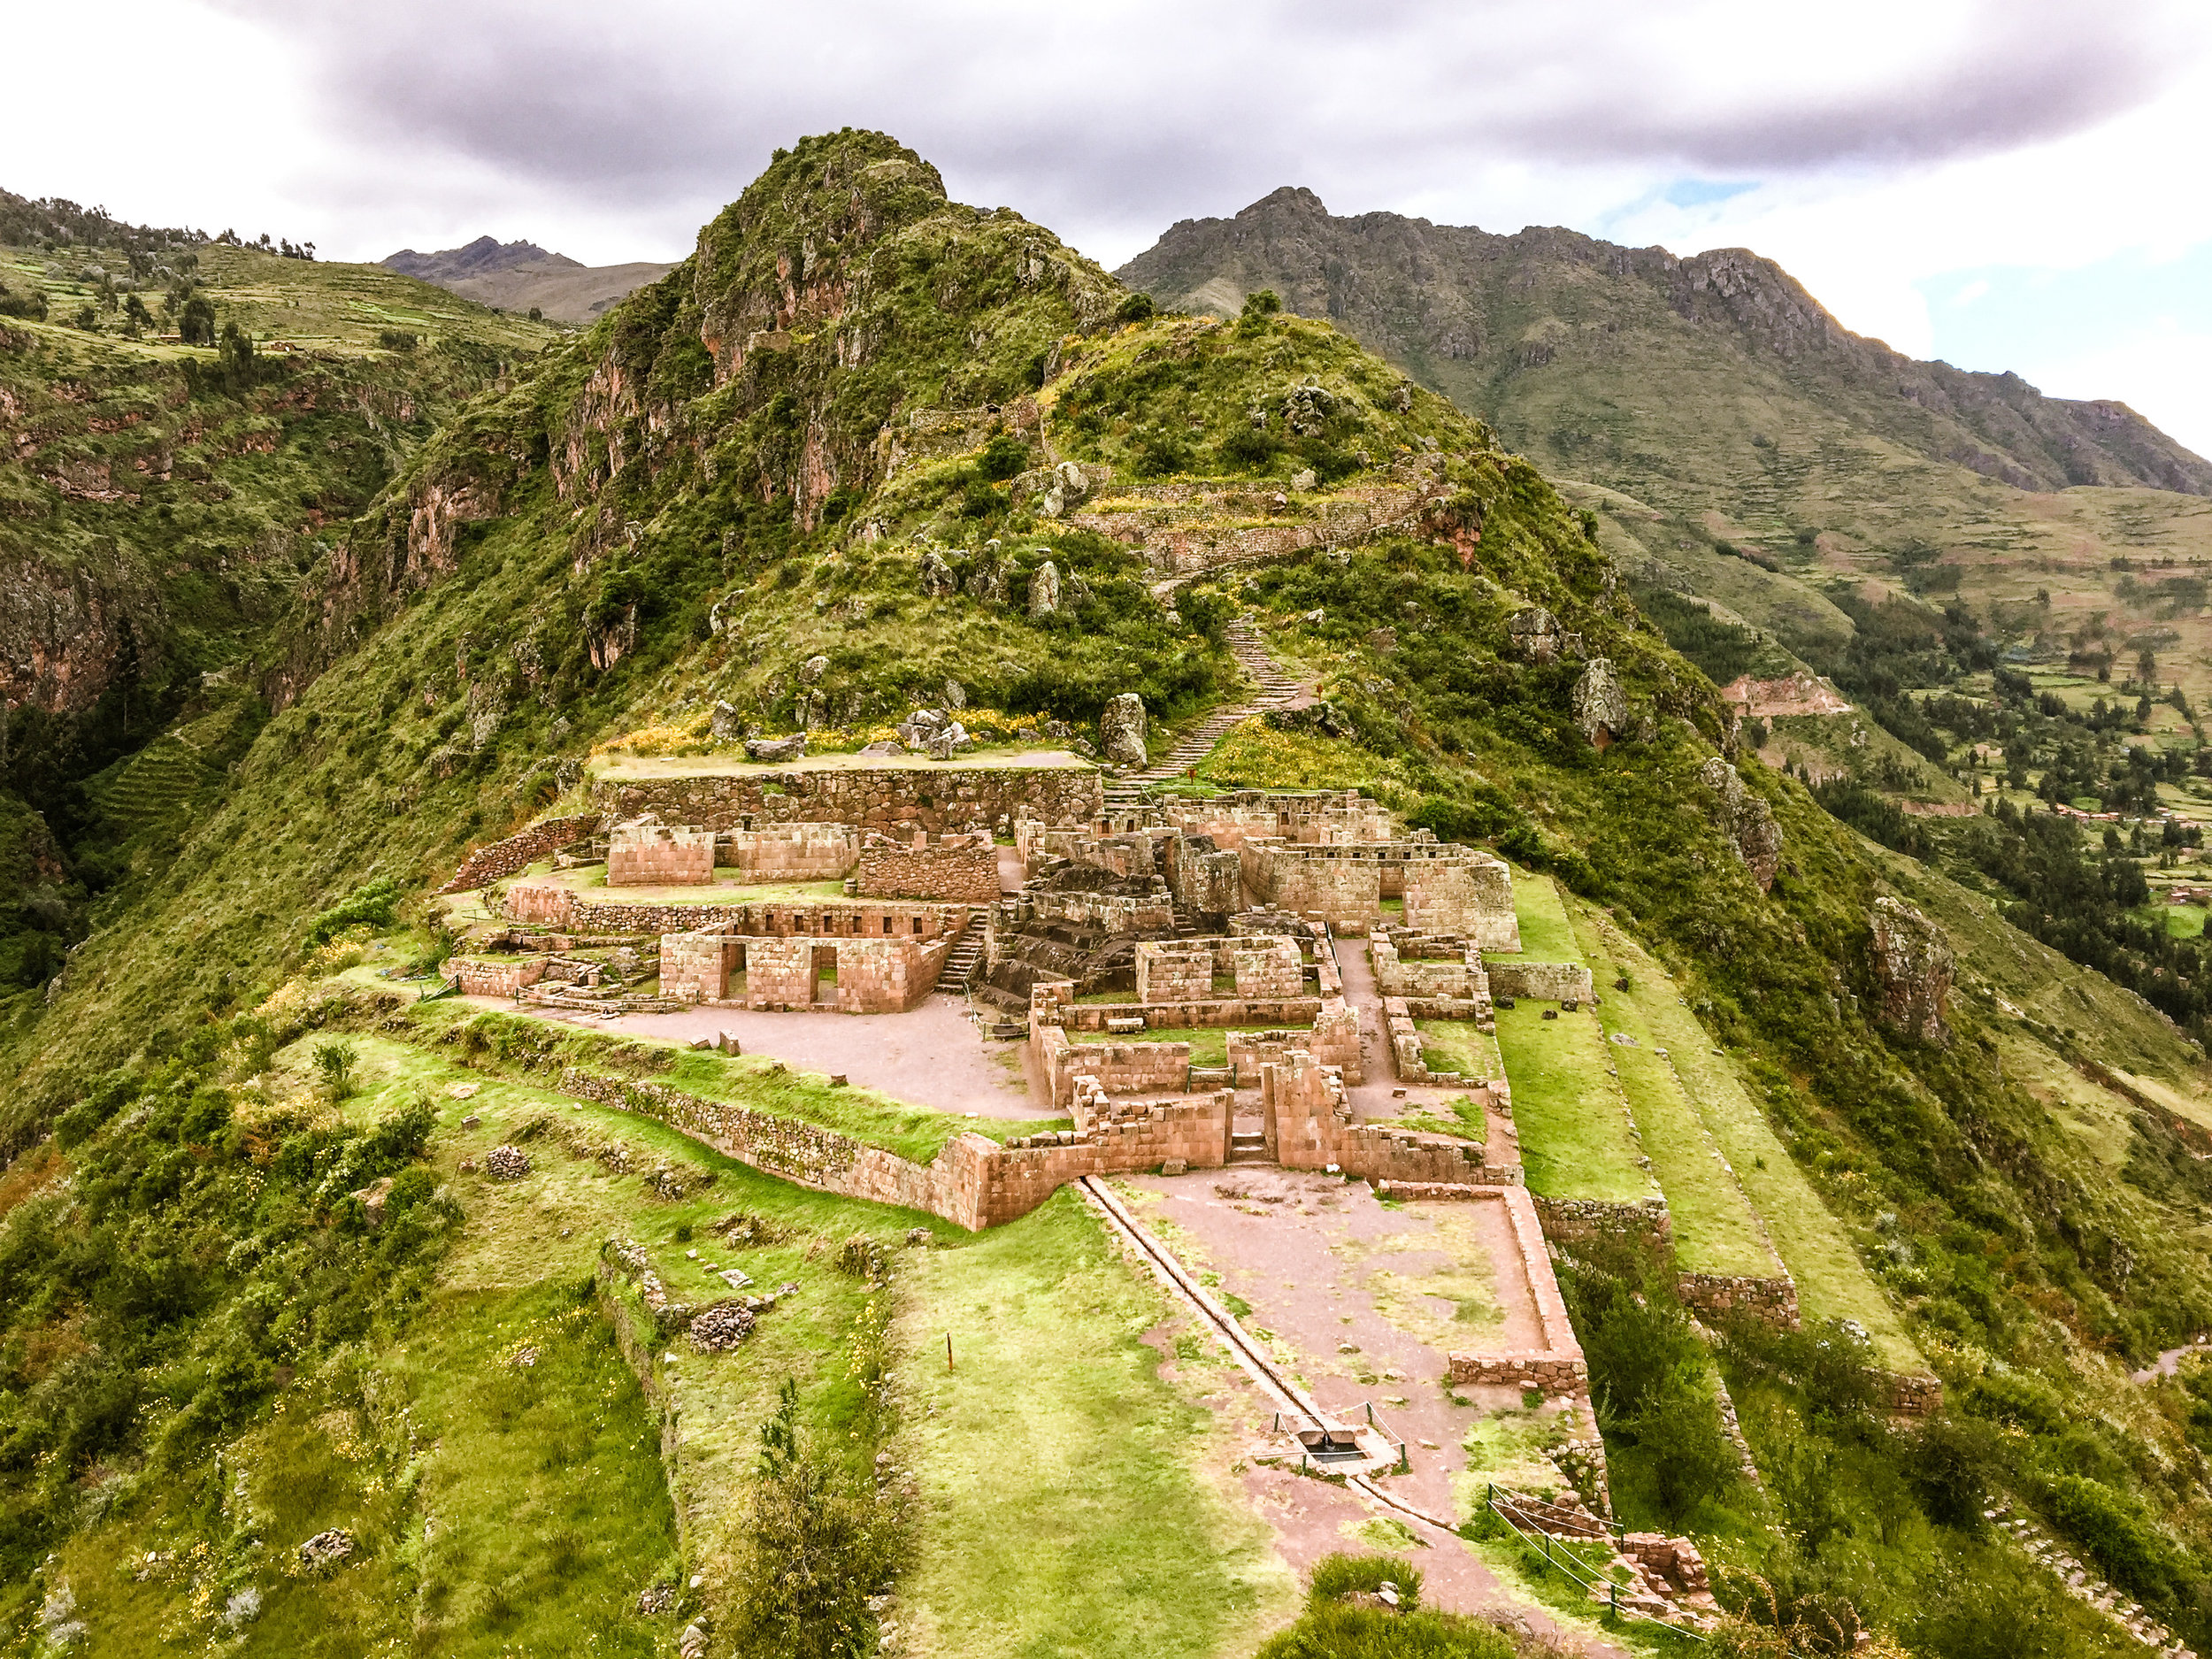 Discover Pisac Inca Ruins and Terraces - Five times the size of Machu Picchu and with some of the most heart-stopping views in Peru. The stonework, as well, is legendary, and includes one of the few surviving solar clocks the Incas used to worship the sun.